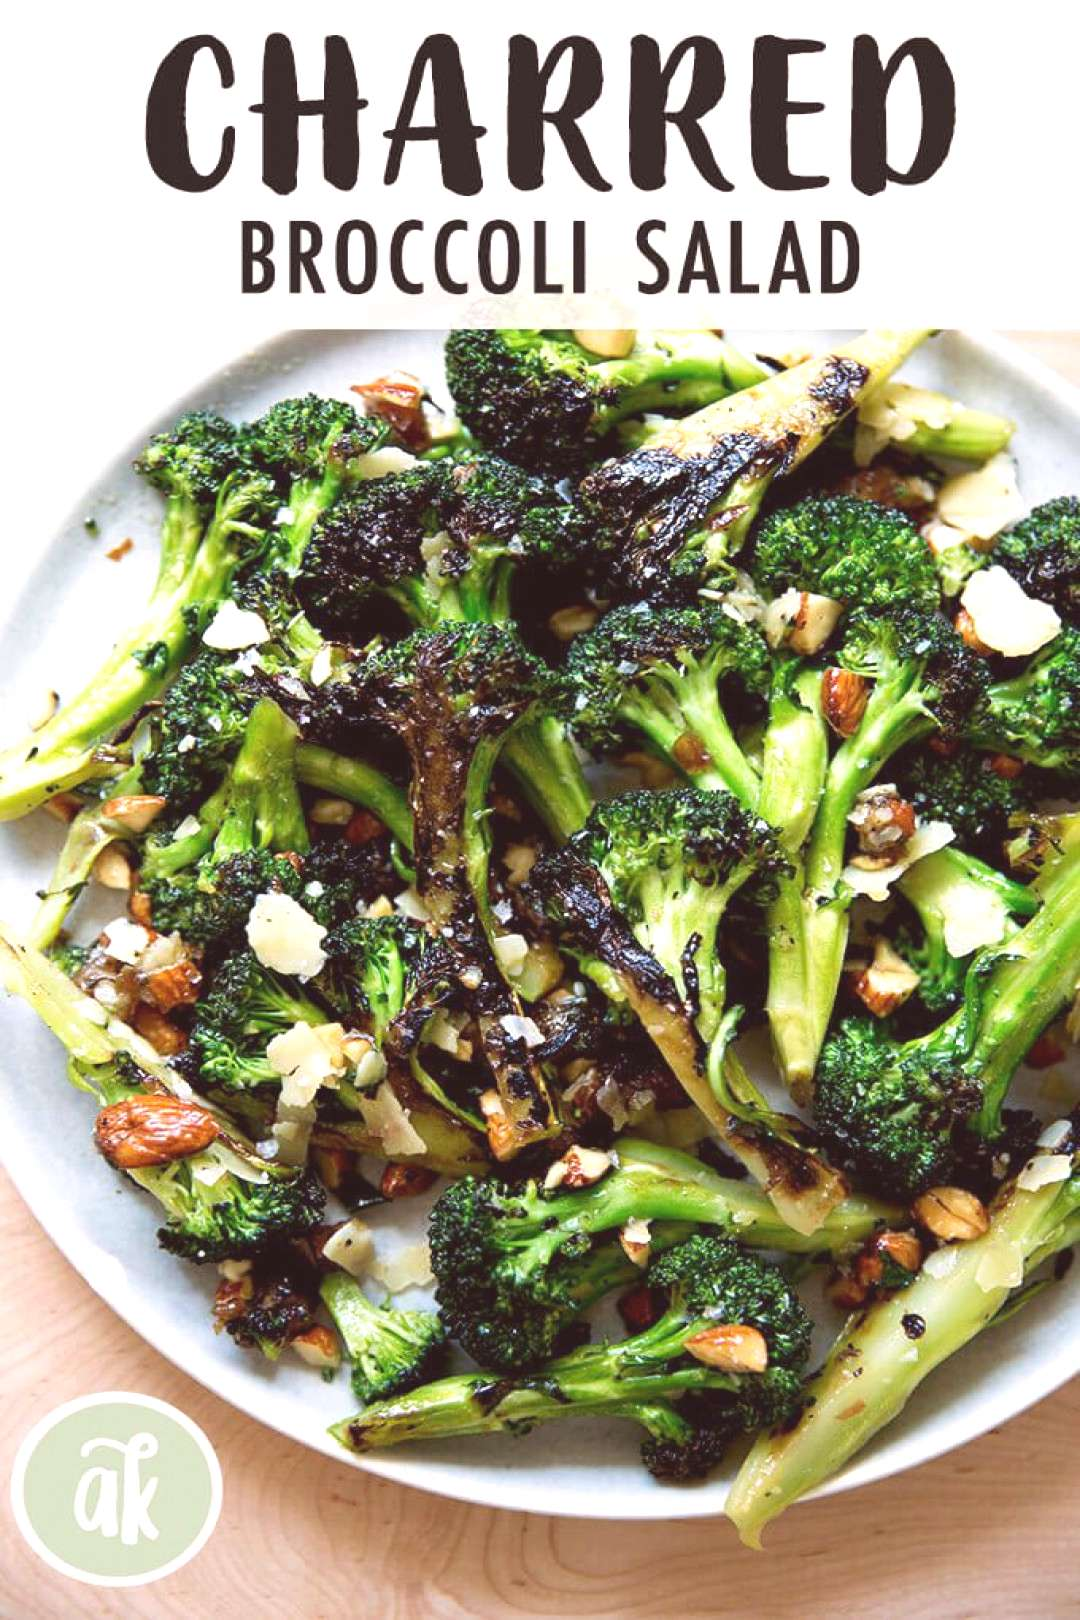 Charred — but not roasted — broccoli salad with dates, almonds and cheddar. This is such a refr